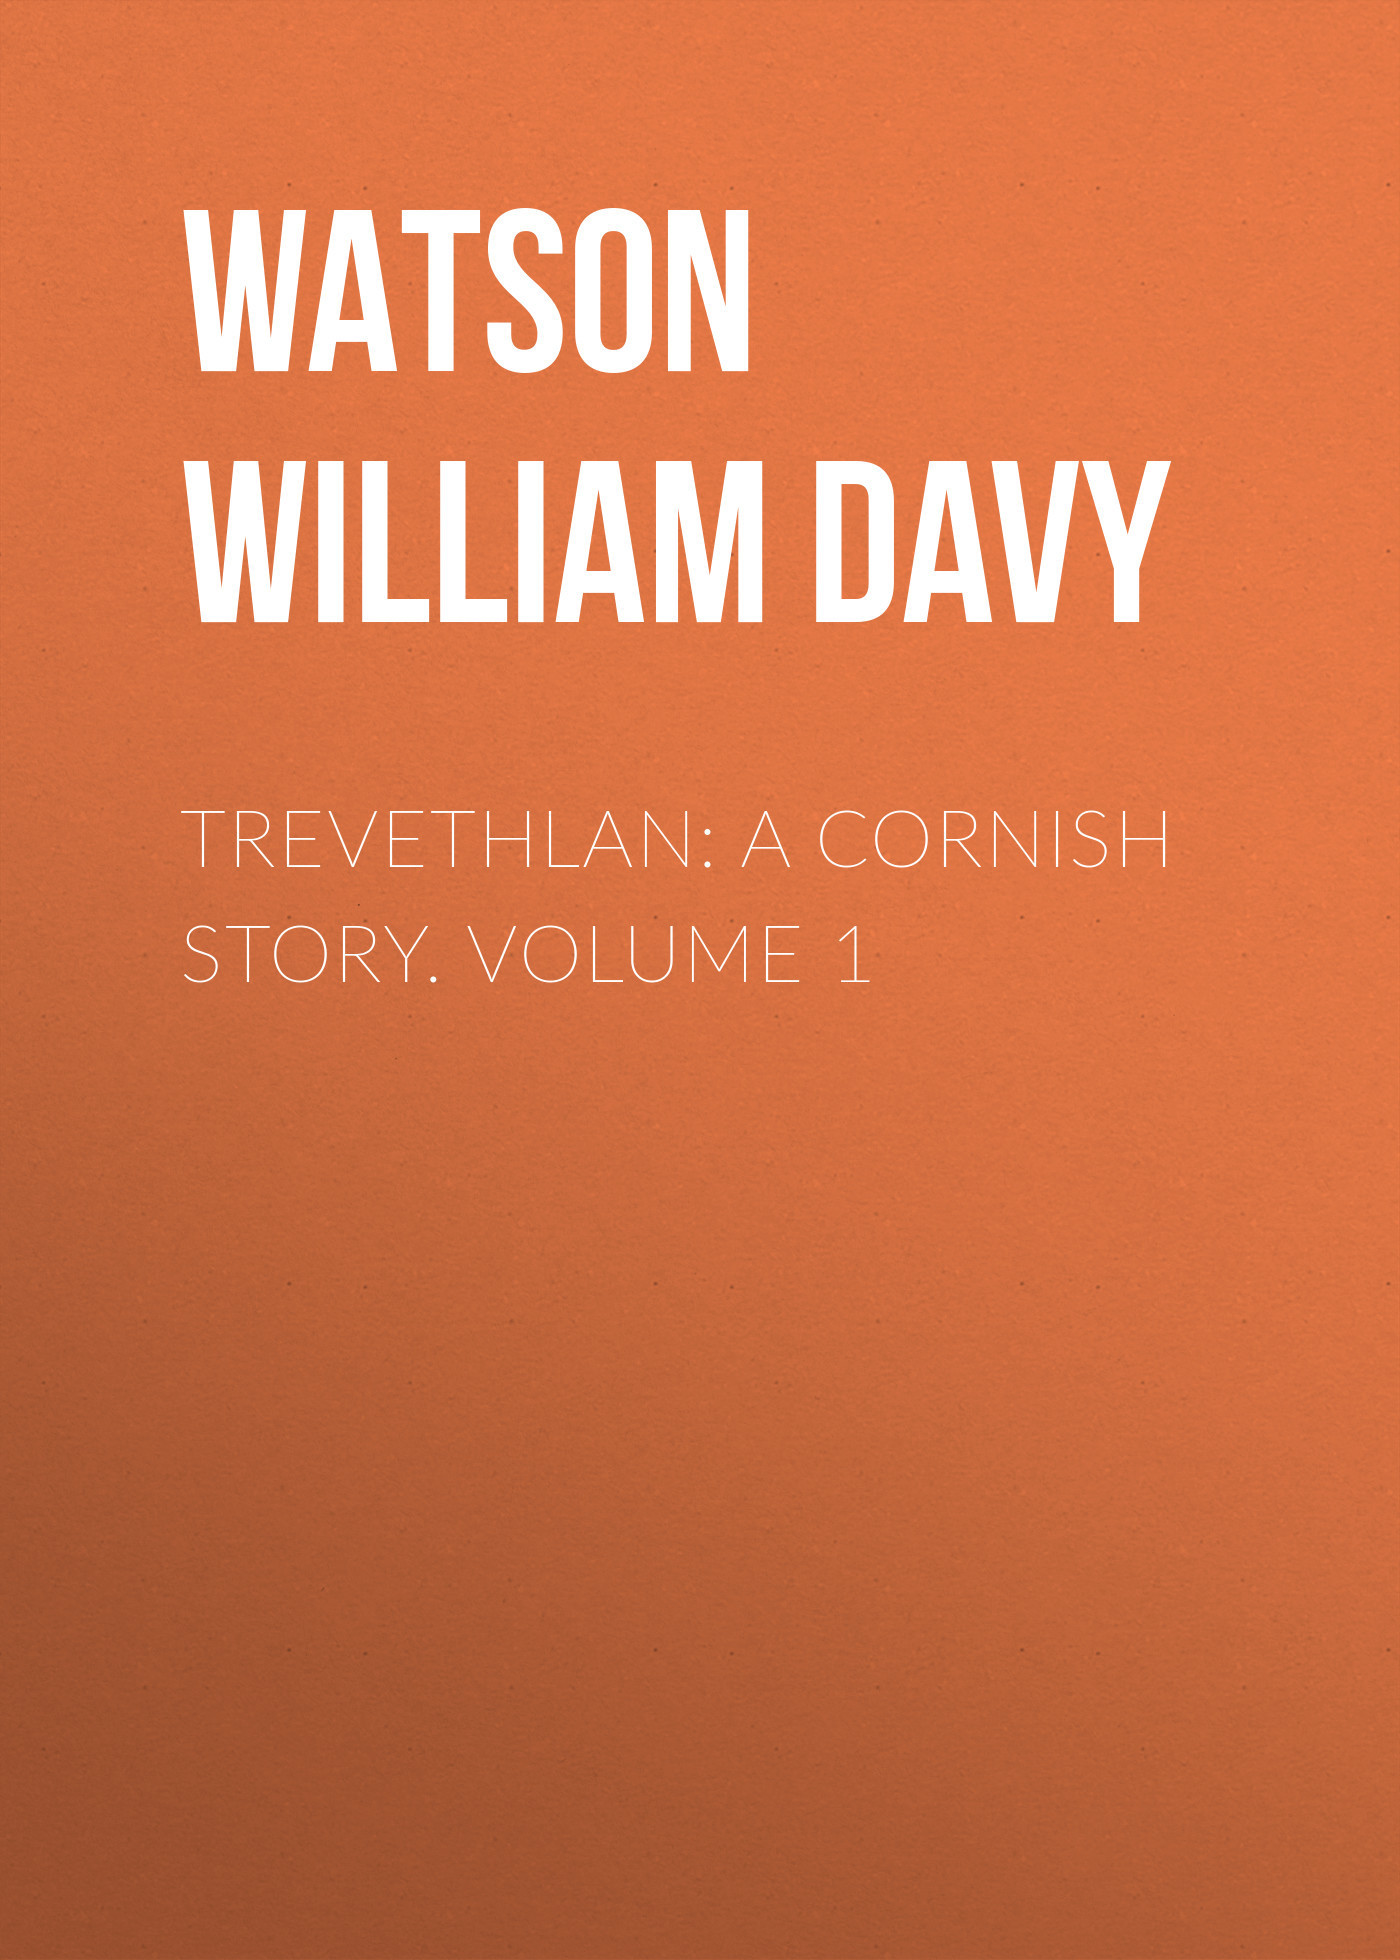 Watson William Davy Trevethlan: A Cornish Story. Volume 1 watson william davy trevethlan a cornish story volume 3